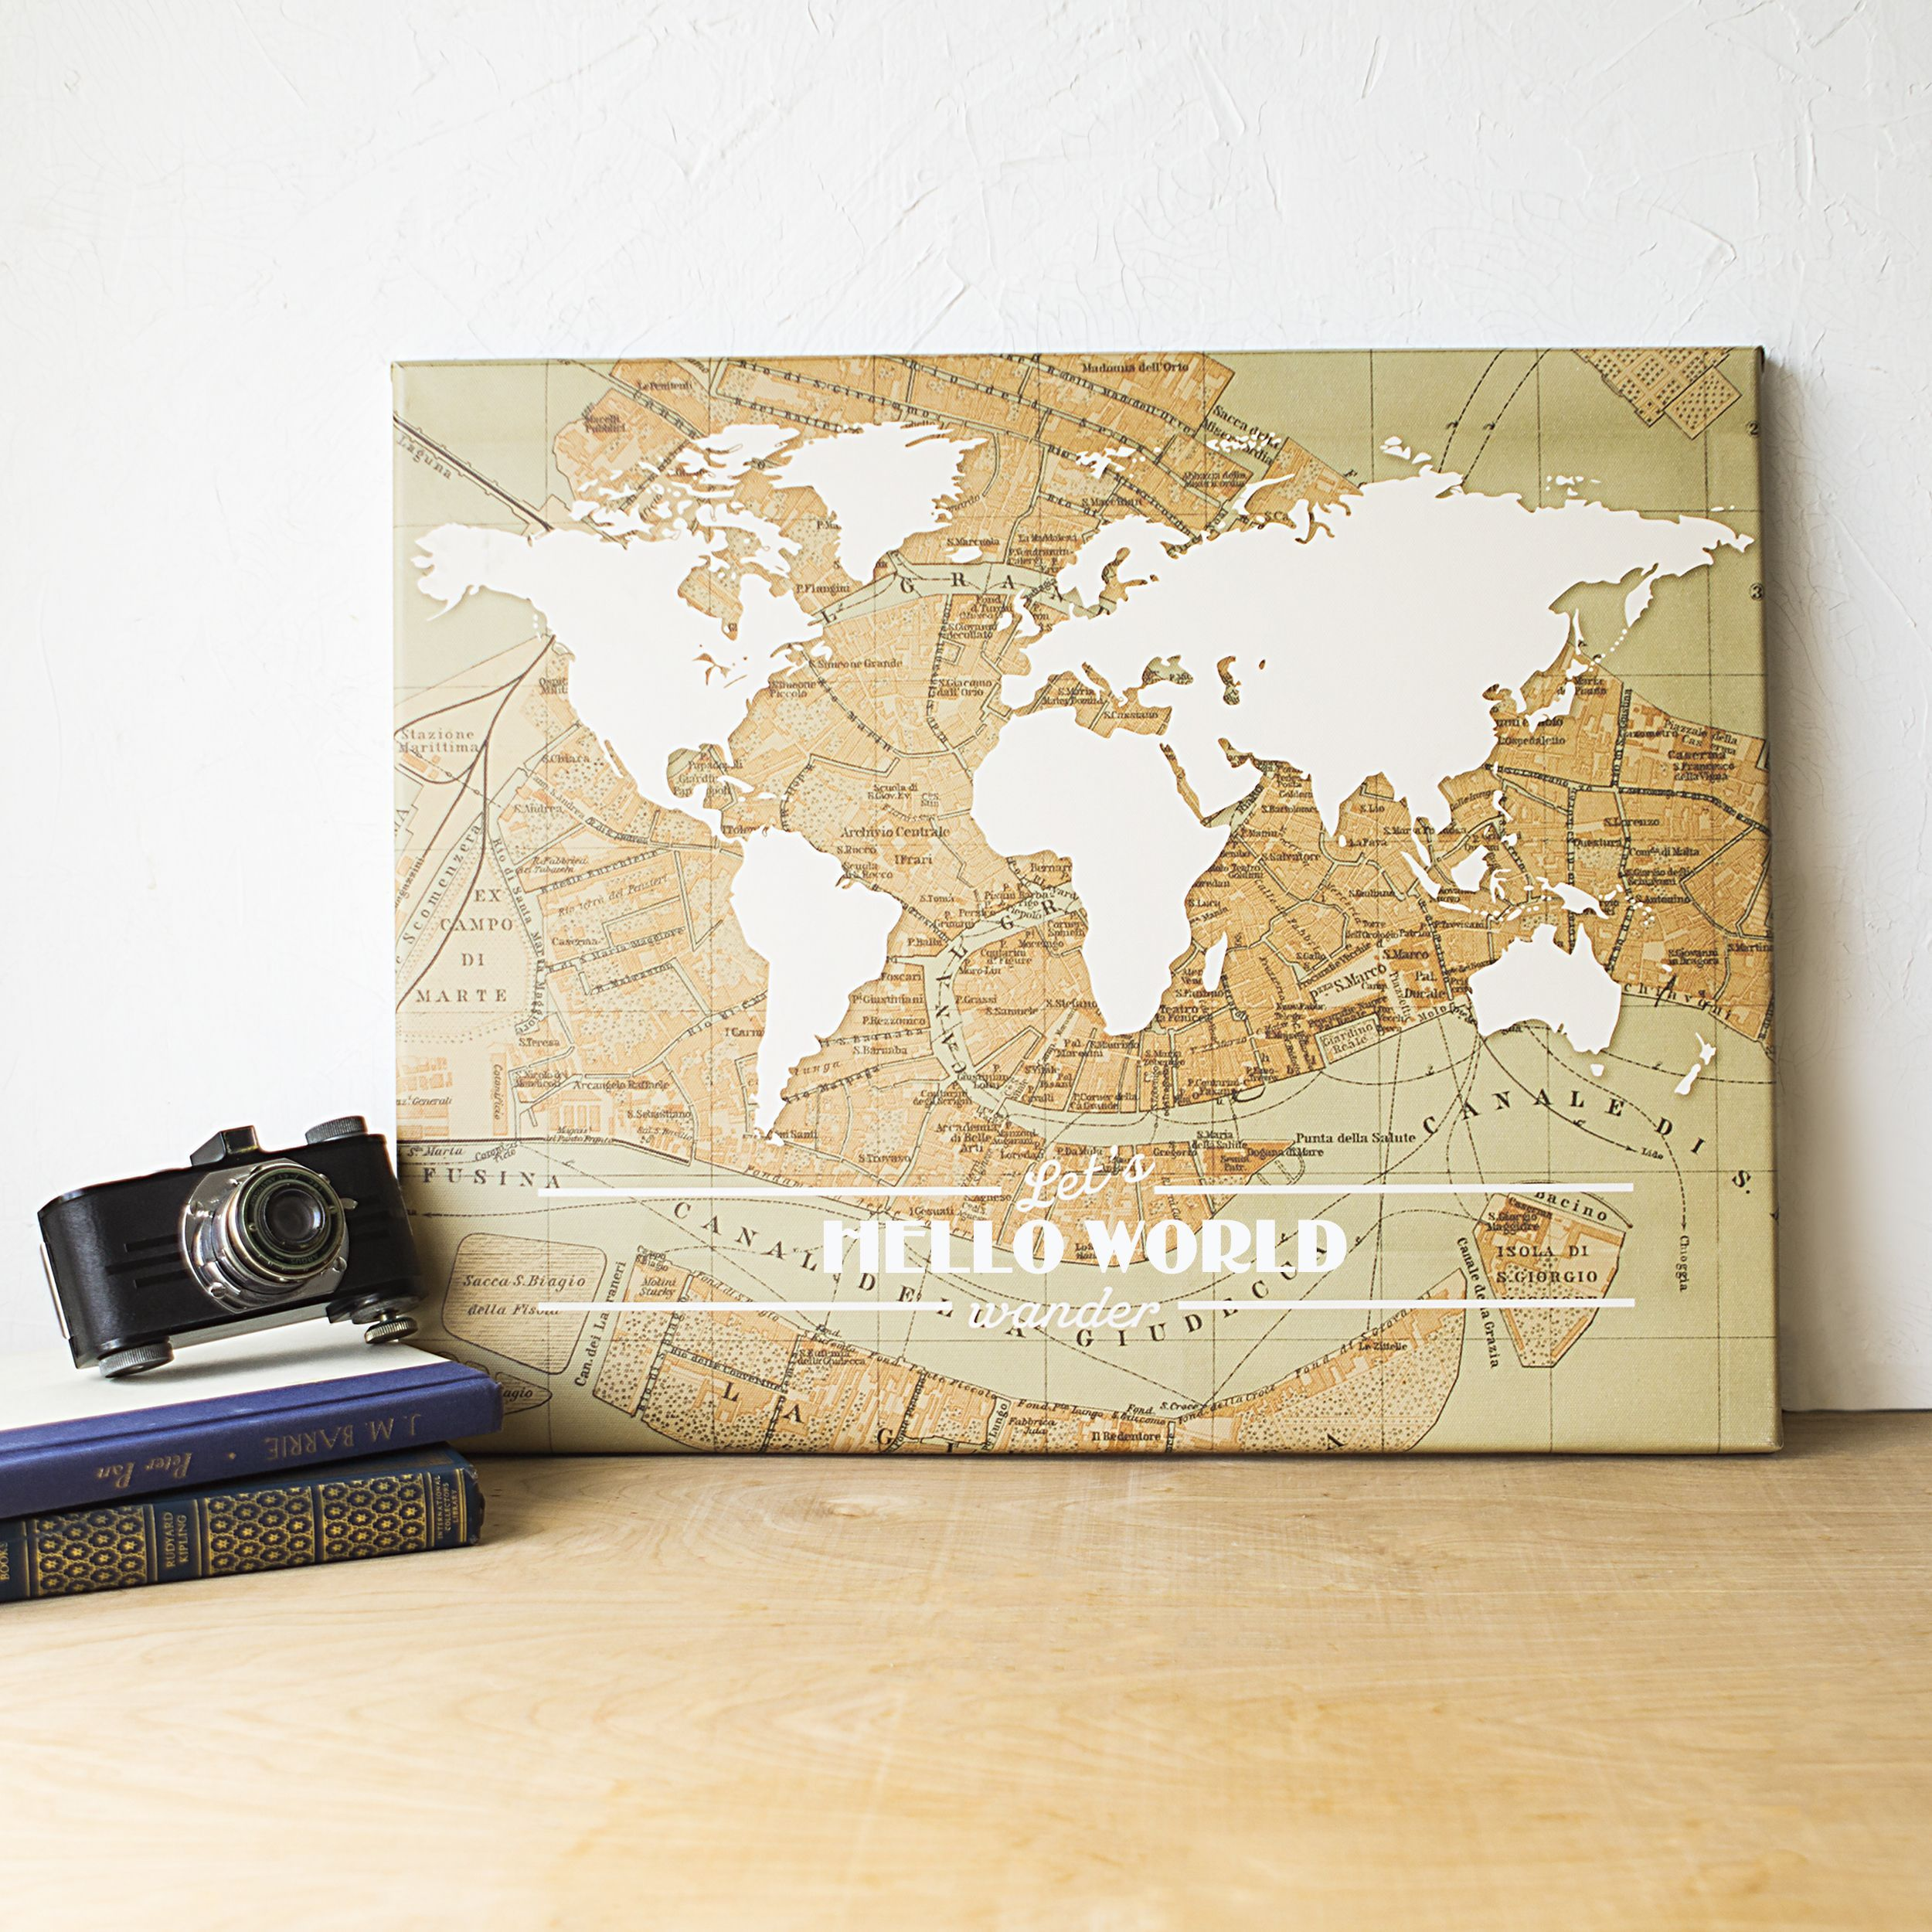 Travel the World Gallery Wrapped Canvas | Products | Pinterest ...